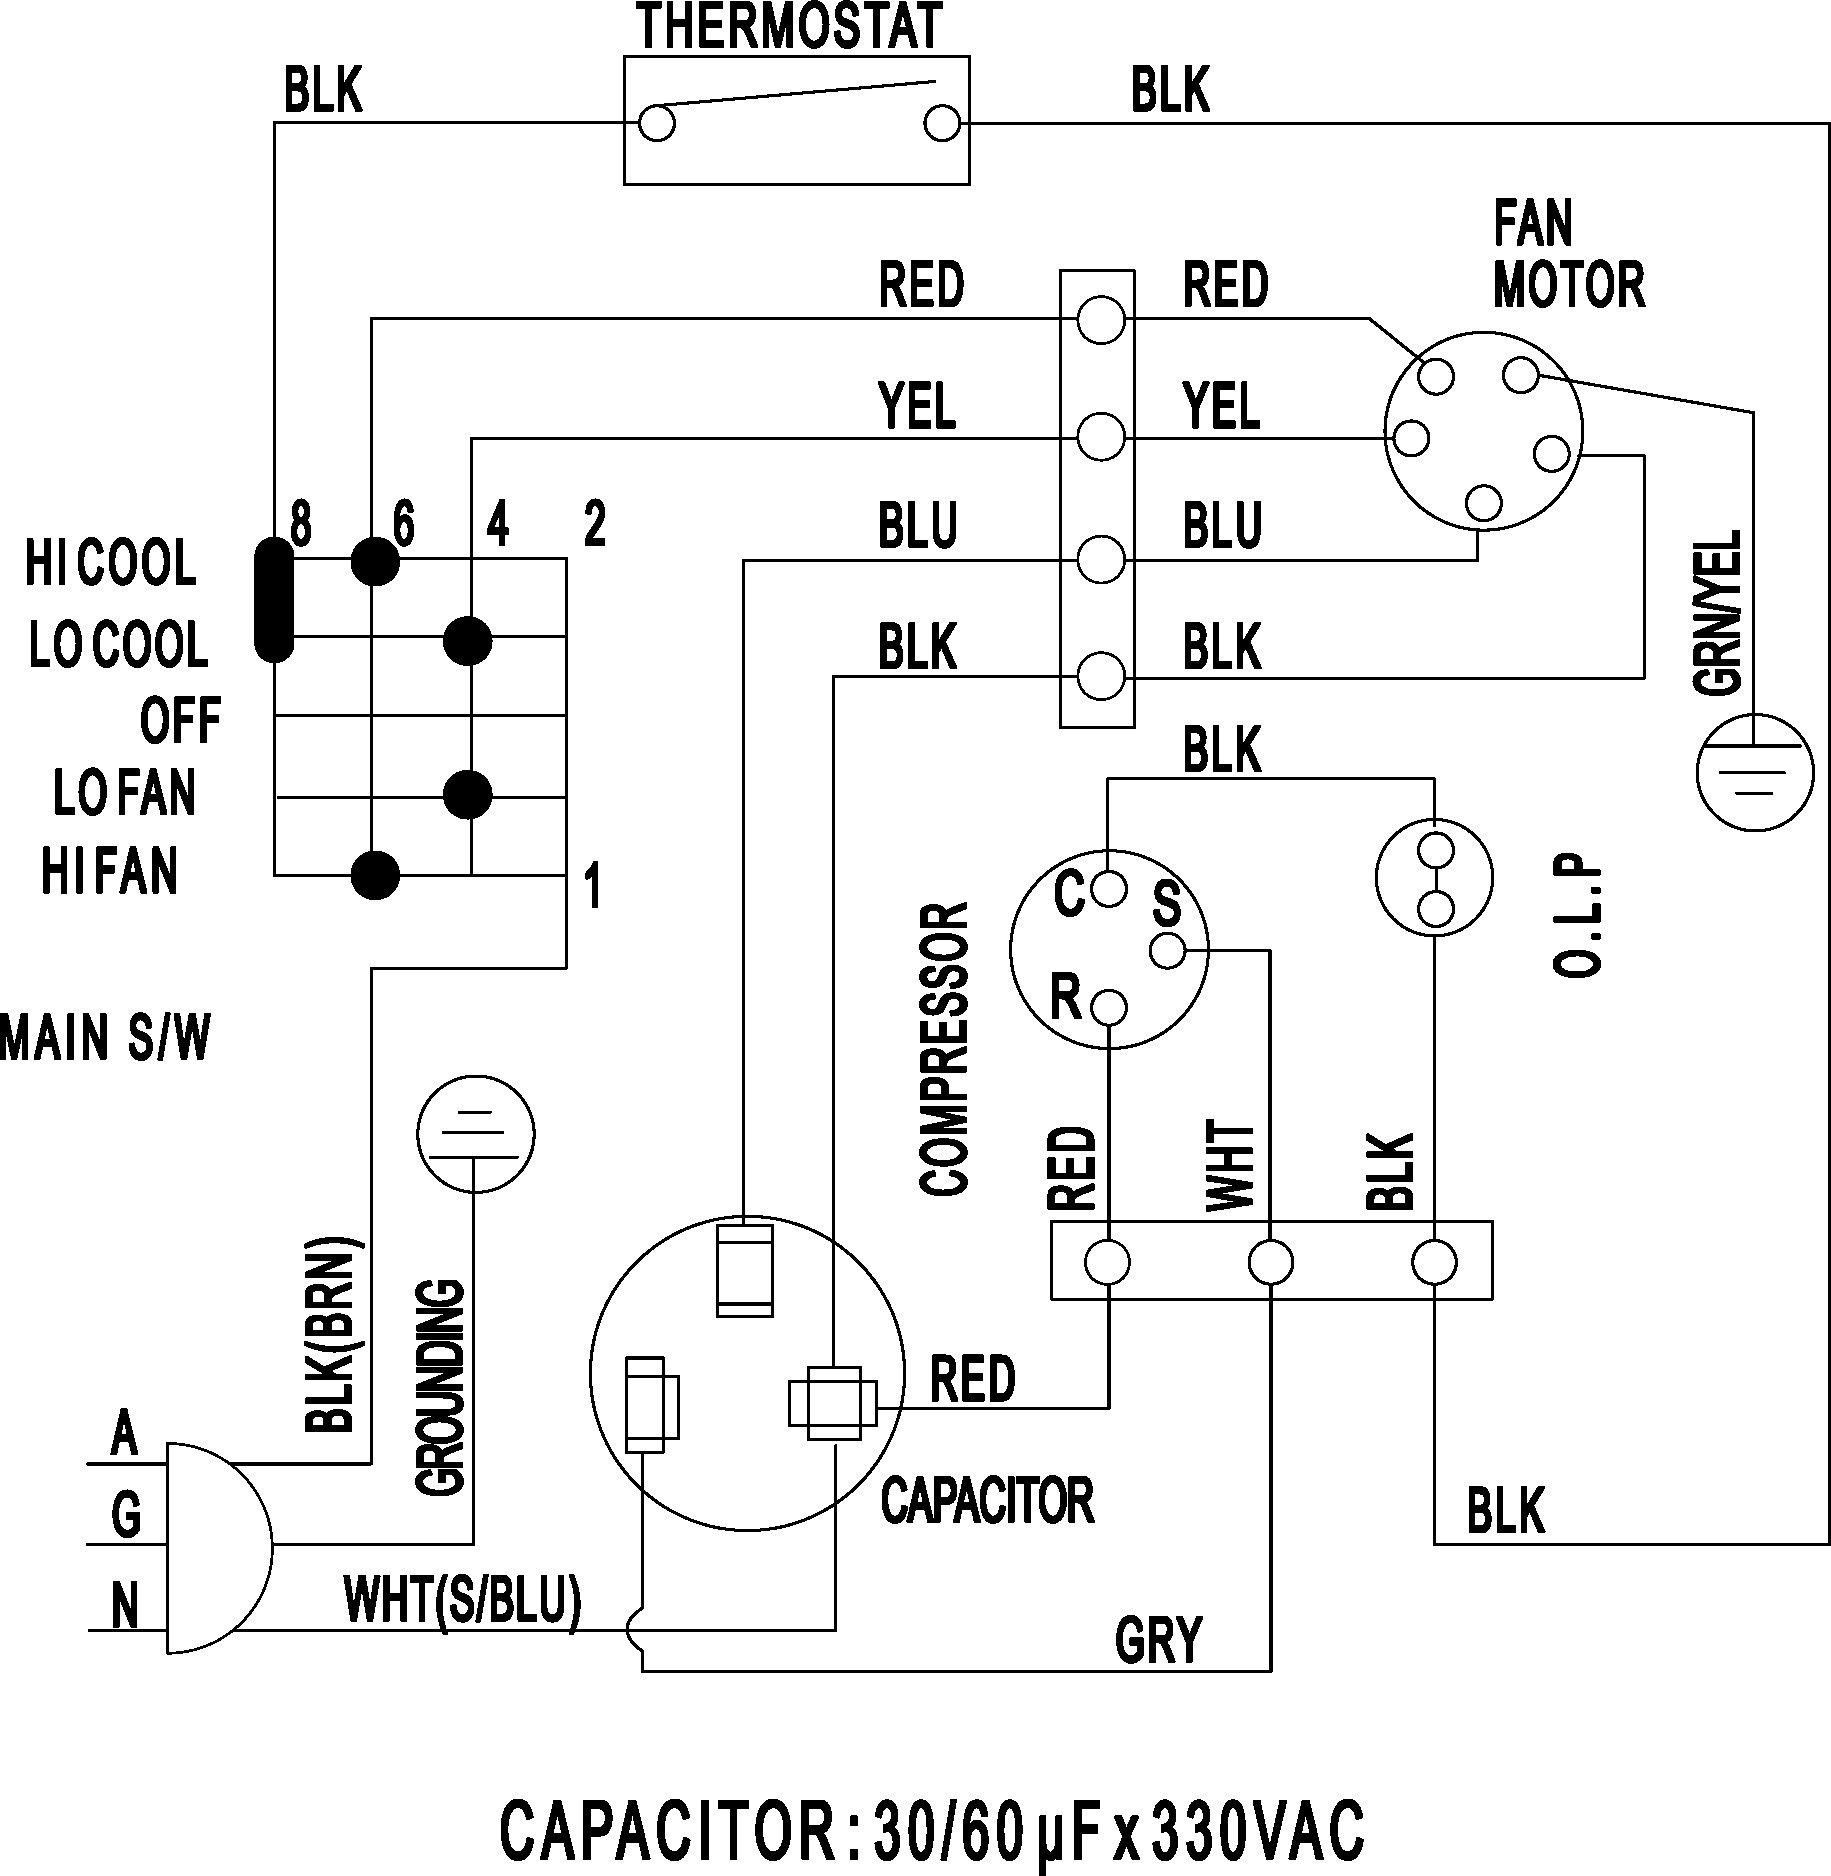 small resolution of unique fan relay wiring diagram hvac diagram diagramsample diagramtemplate wiringdiagram diagramchart worksheet worksheettemplate